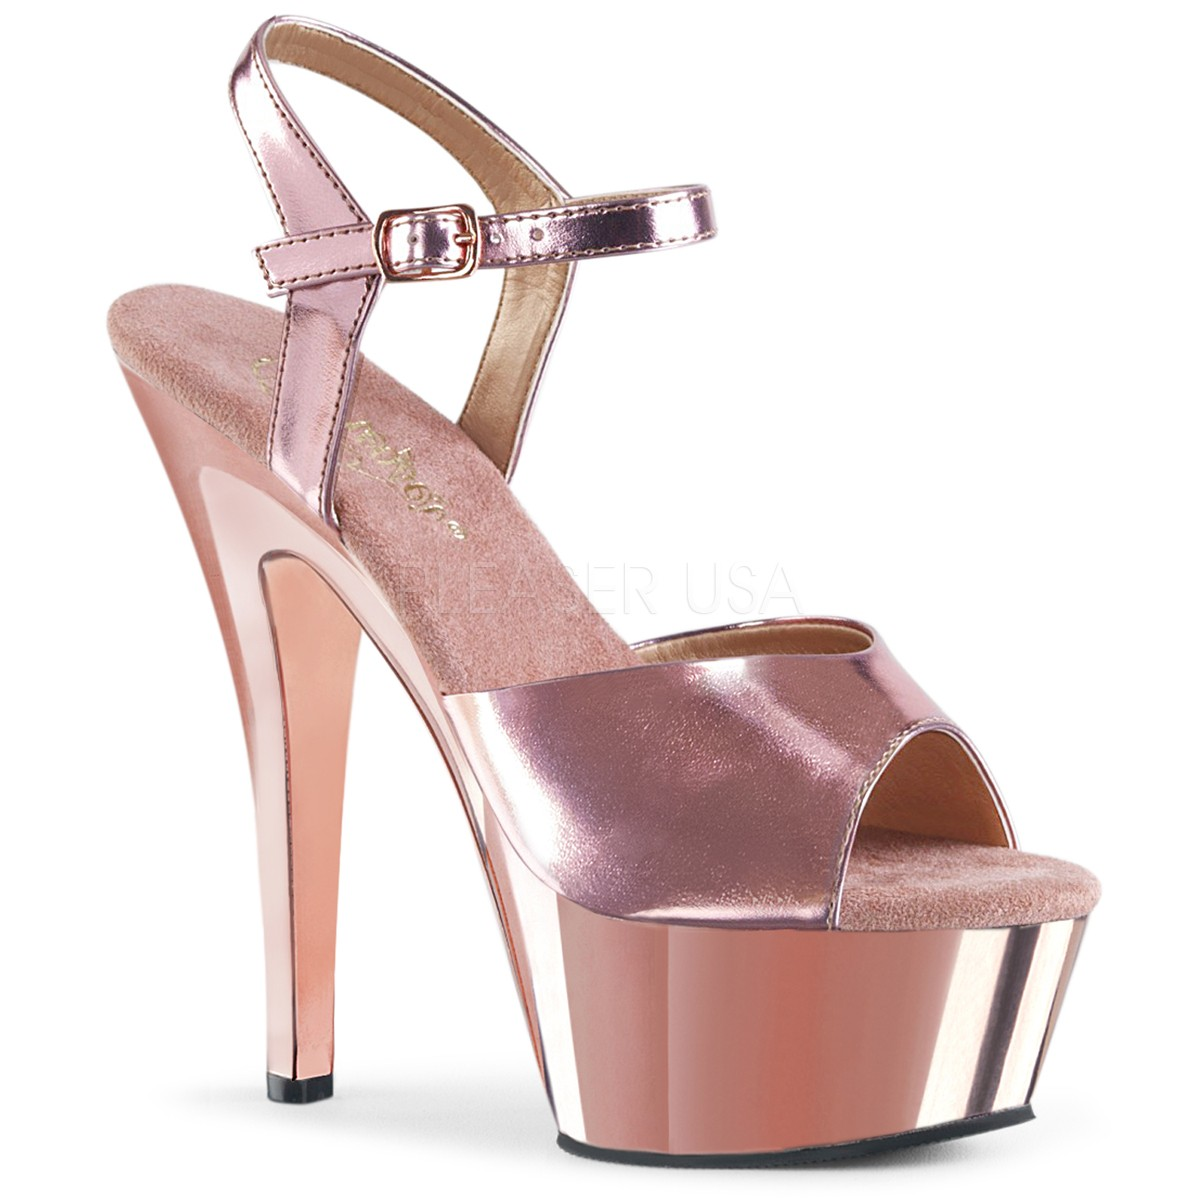 KISS 209 ROSE GOLD